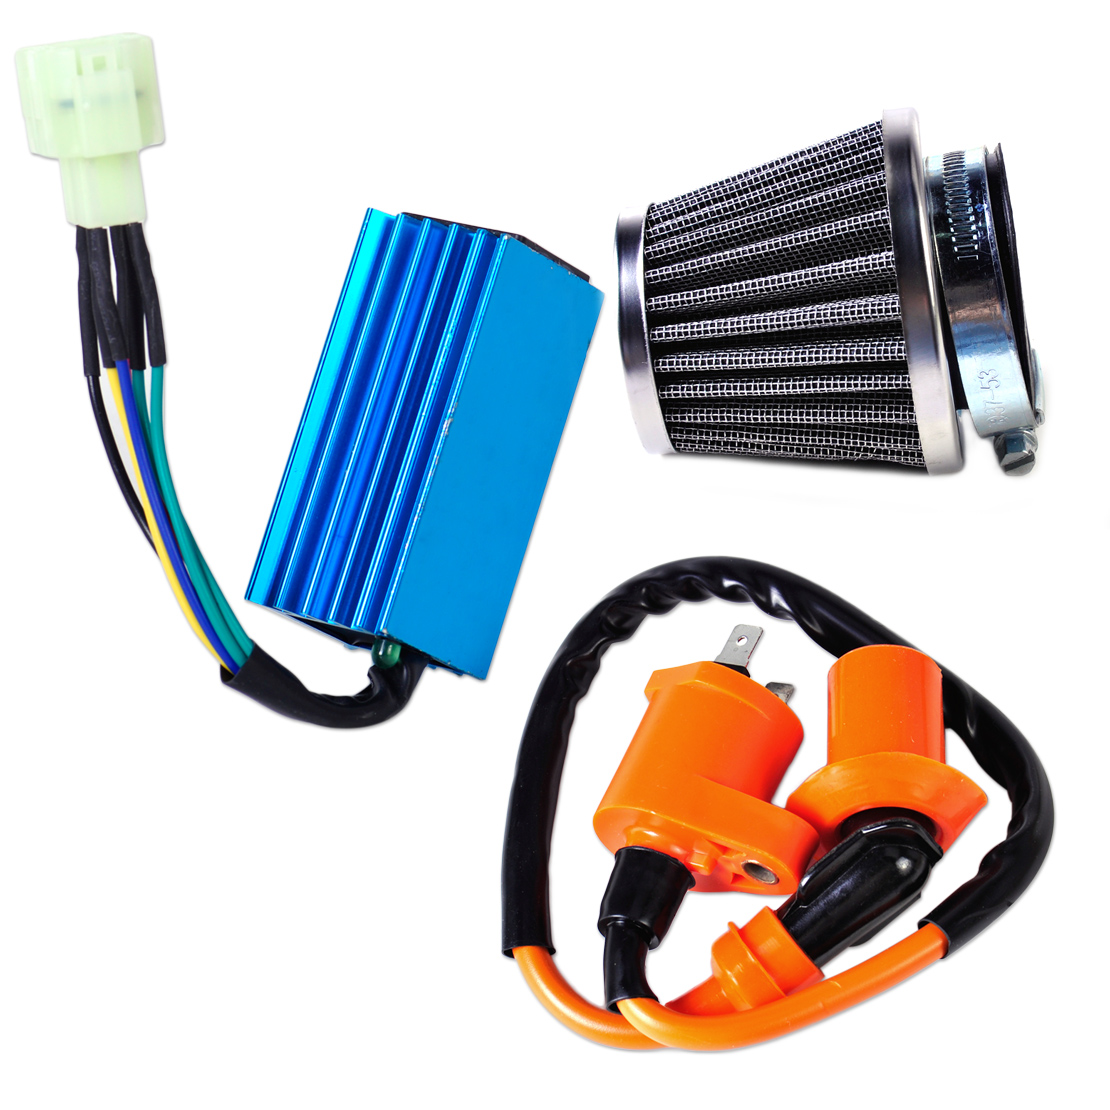 CITALL Motorcycle Racing Ignition Coil 6Pin CDI Box Air Filter Kit for GY6 50cc 70cc 90cc 125cc 150cc Scooter ATV Moped Go Kart 6 pin performance cdi 50cc 150cc скутеры квадроциклы go картинг gy6 транспорт двигатель